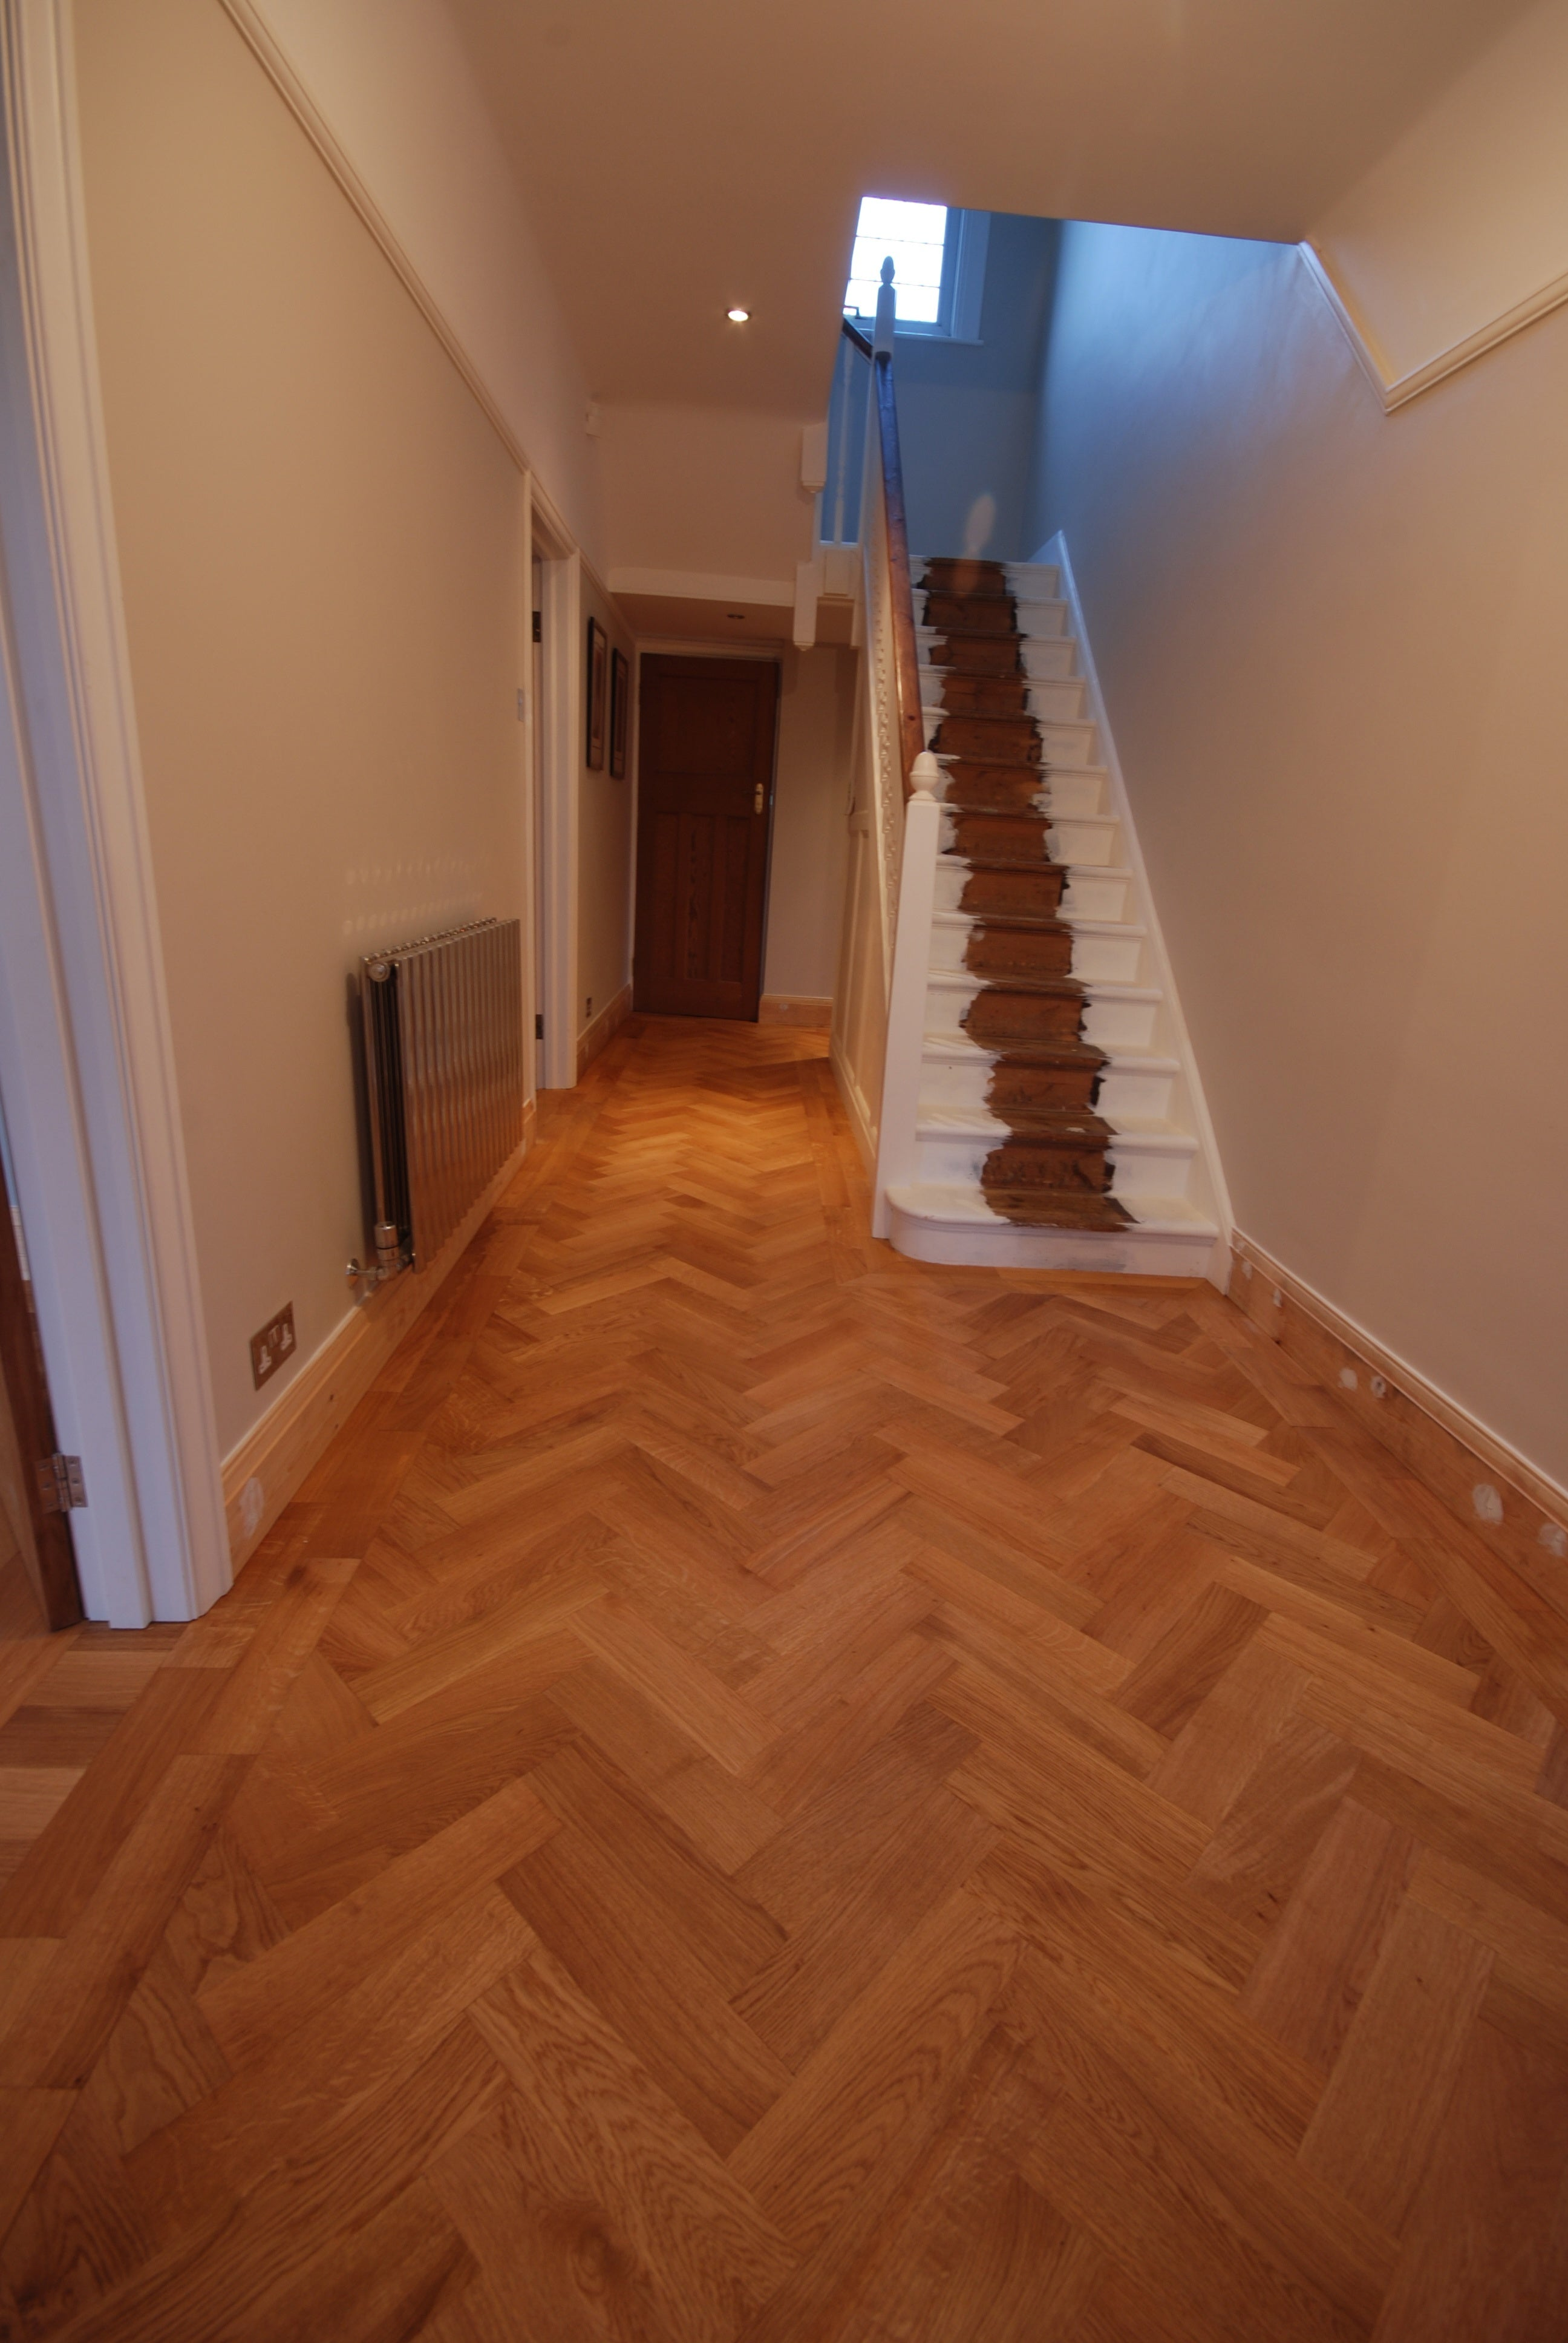 Parquet flooring being installed in hallway